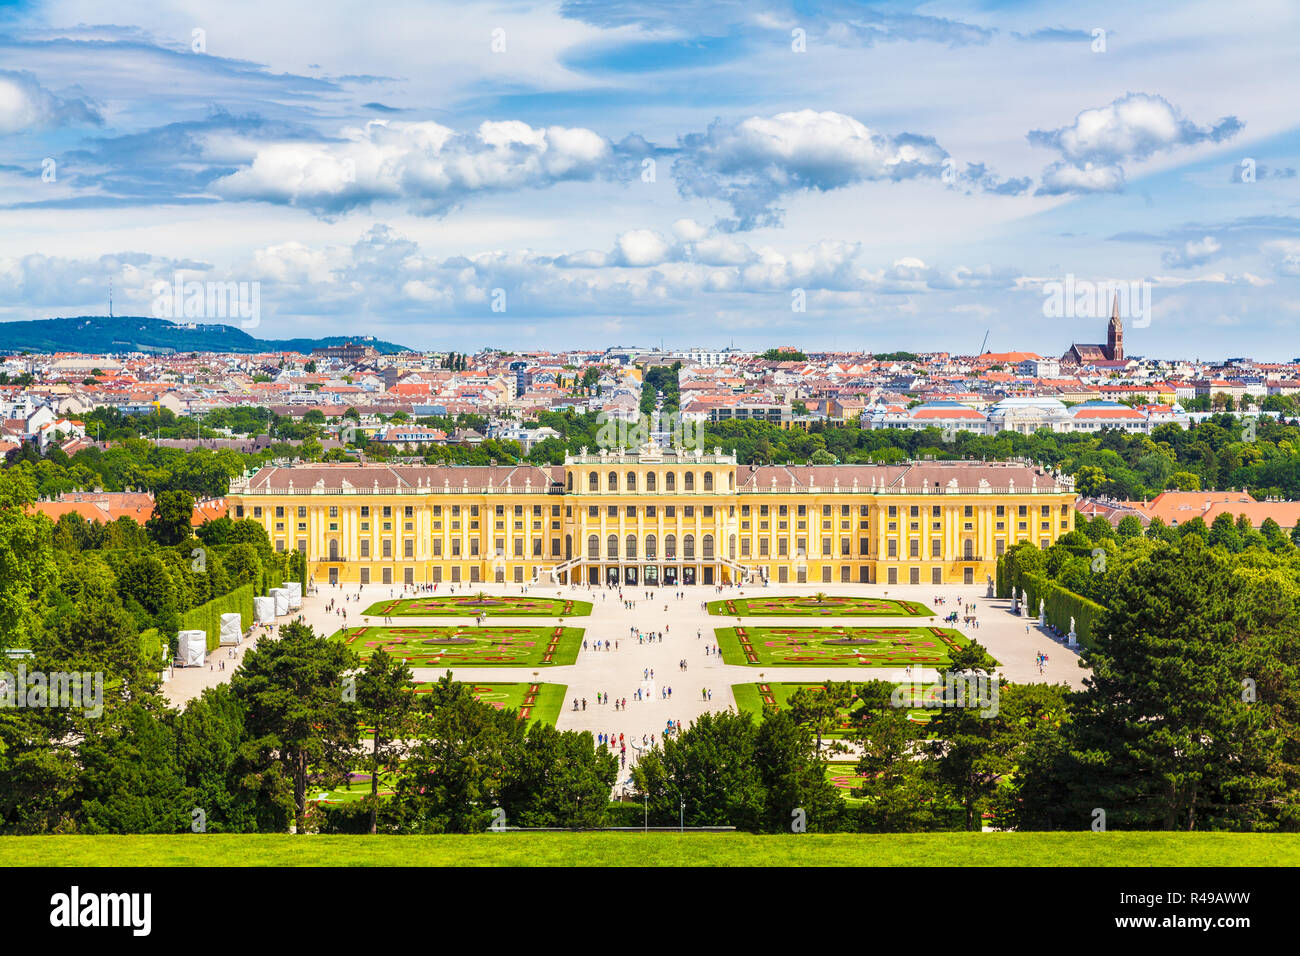 Classic view of famous Schonbrunn Palace with scenic Great Parterre garden on a beautiful sunny day with blue sky and clouds in summer, Vienna, Austri - Stock Image